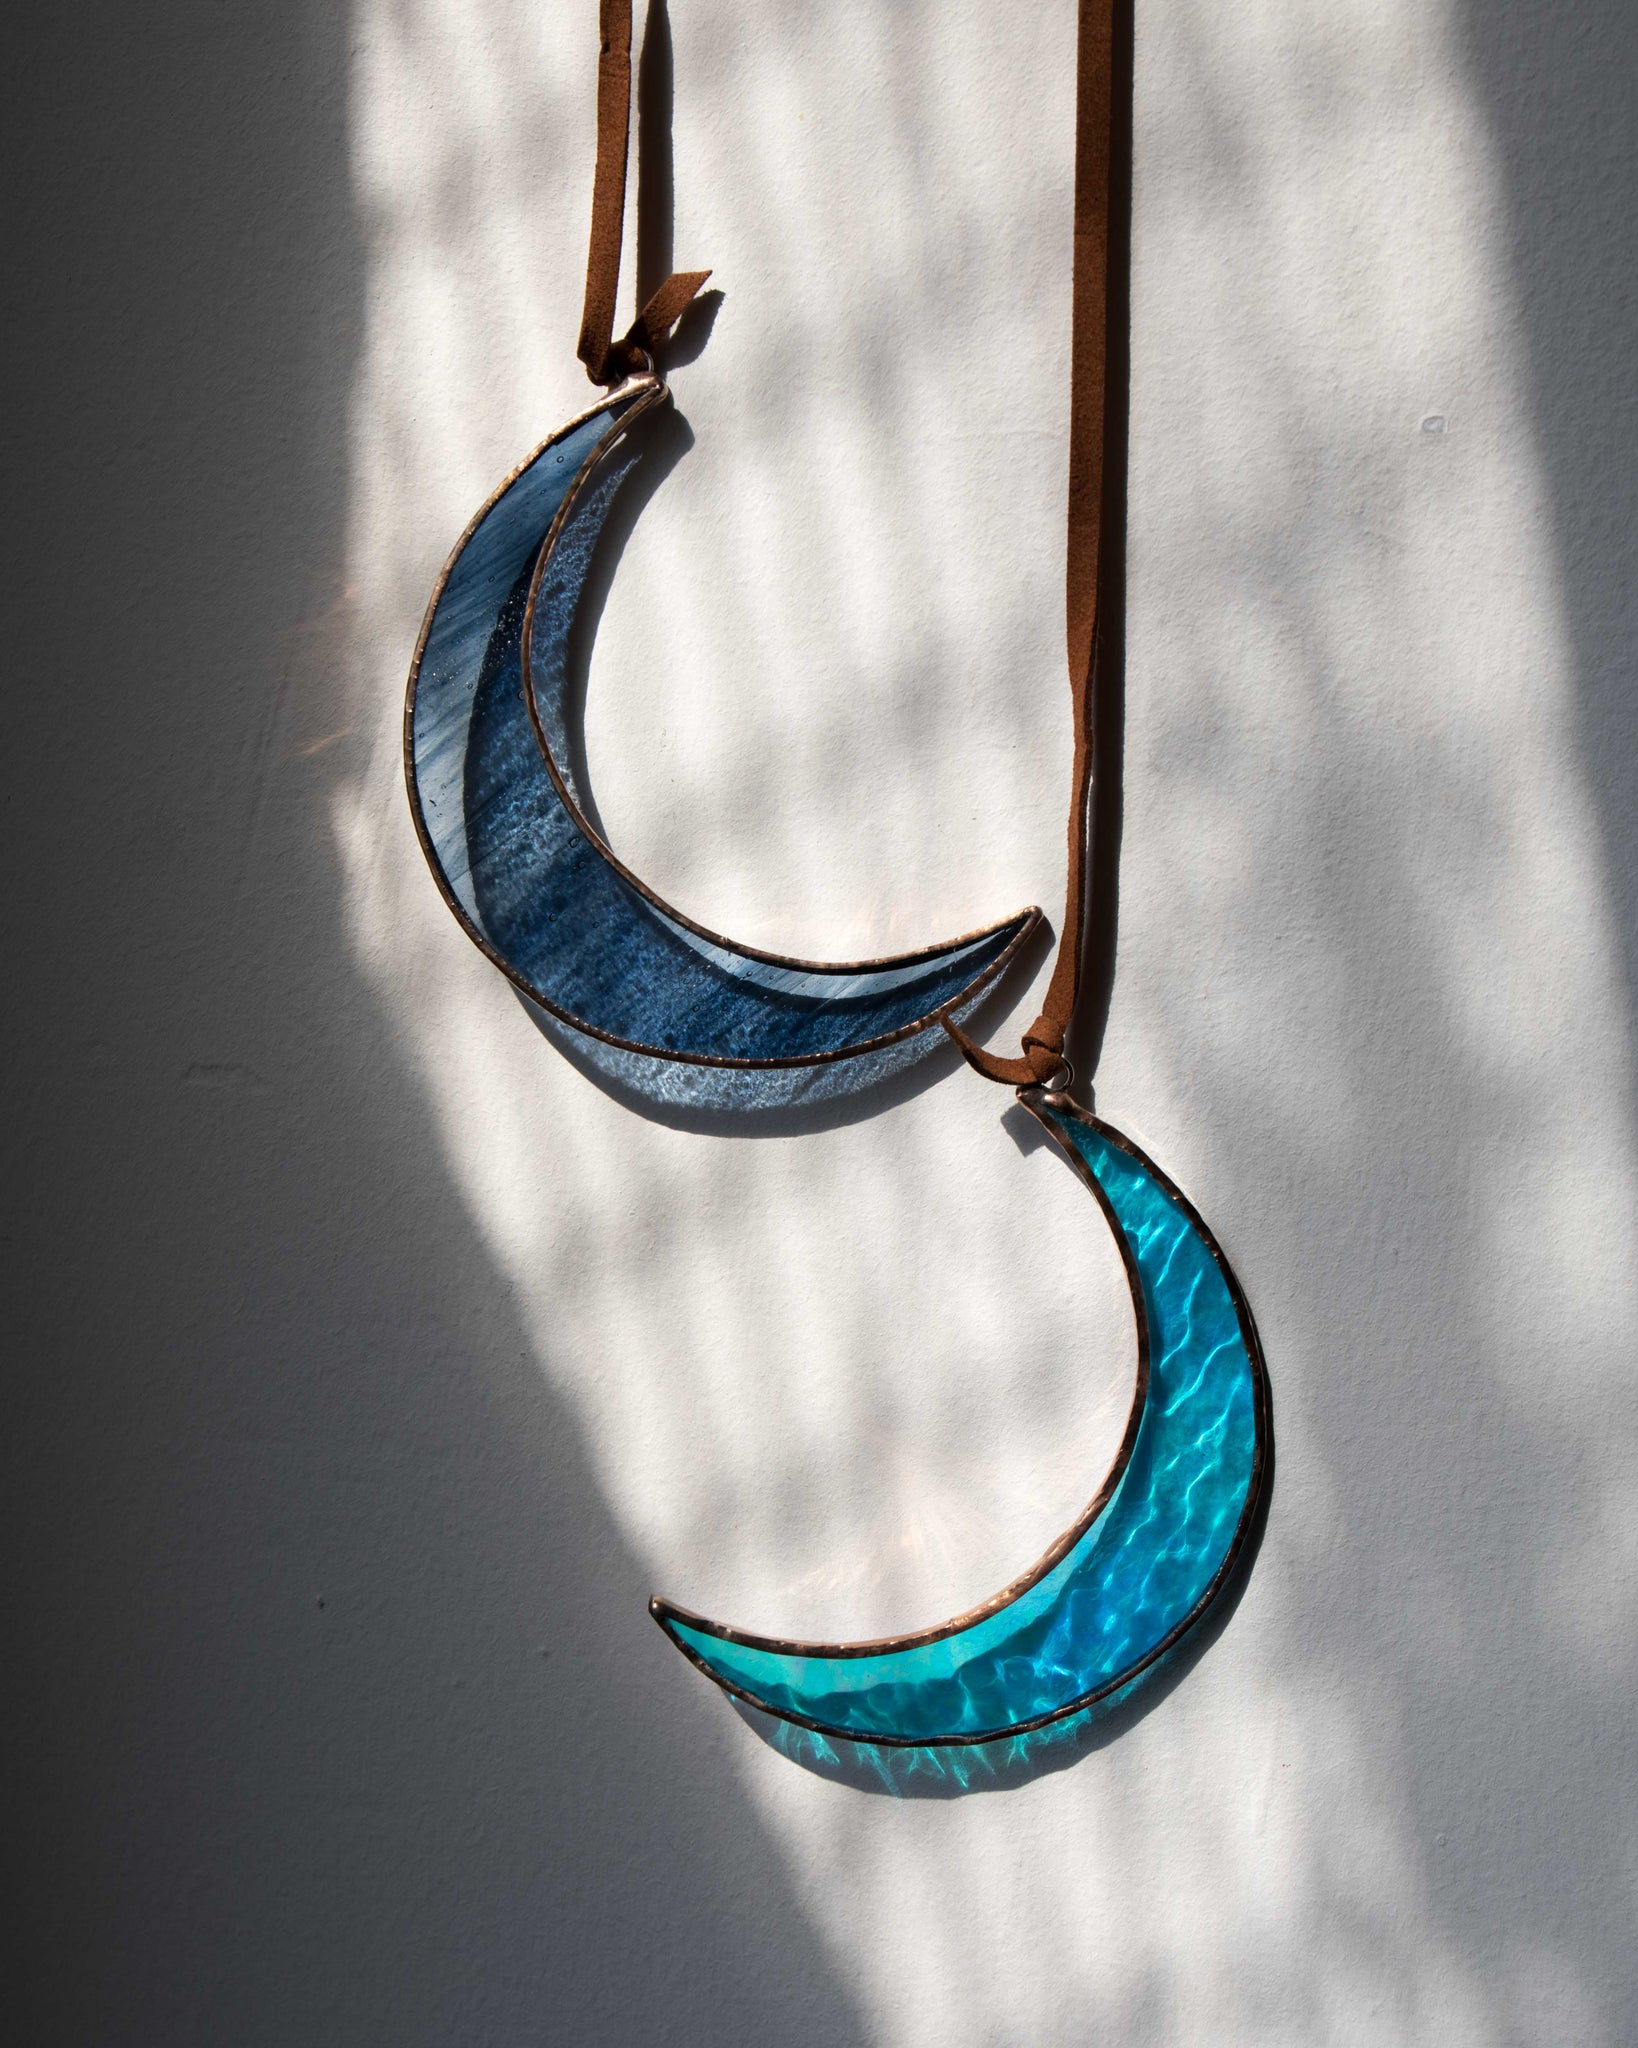 Black/Blue Iridescent Crescent Moon by Colin Adrian Glass